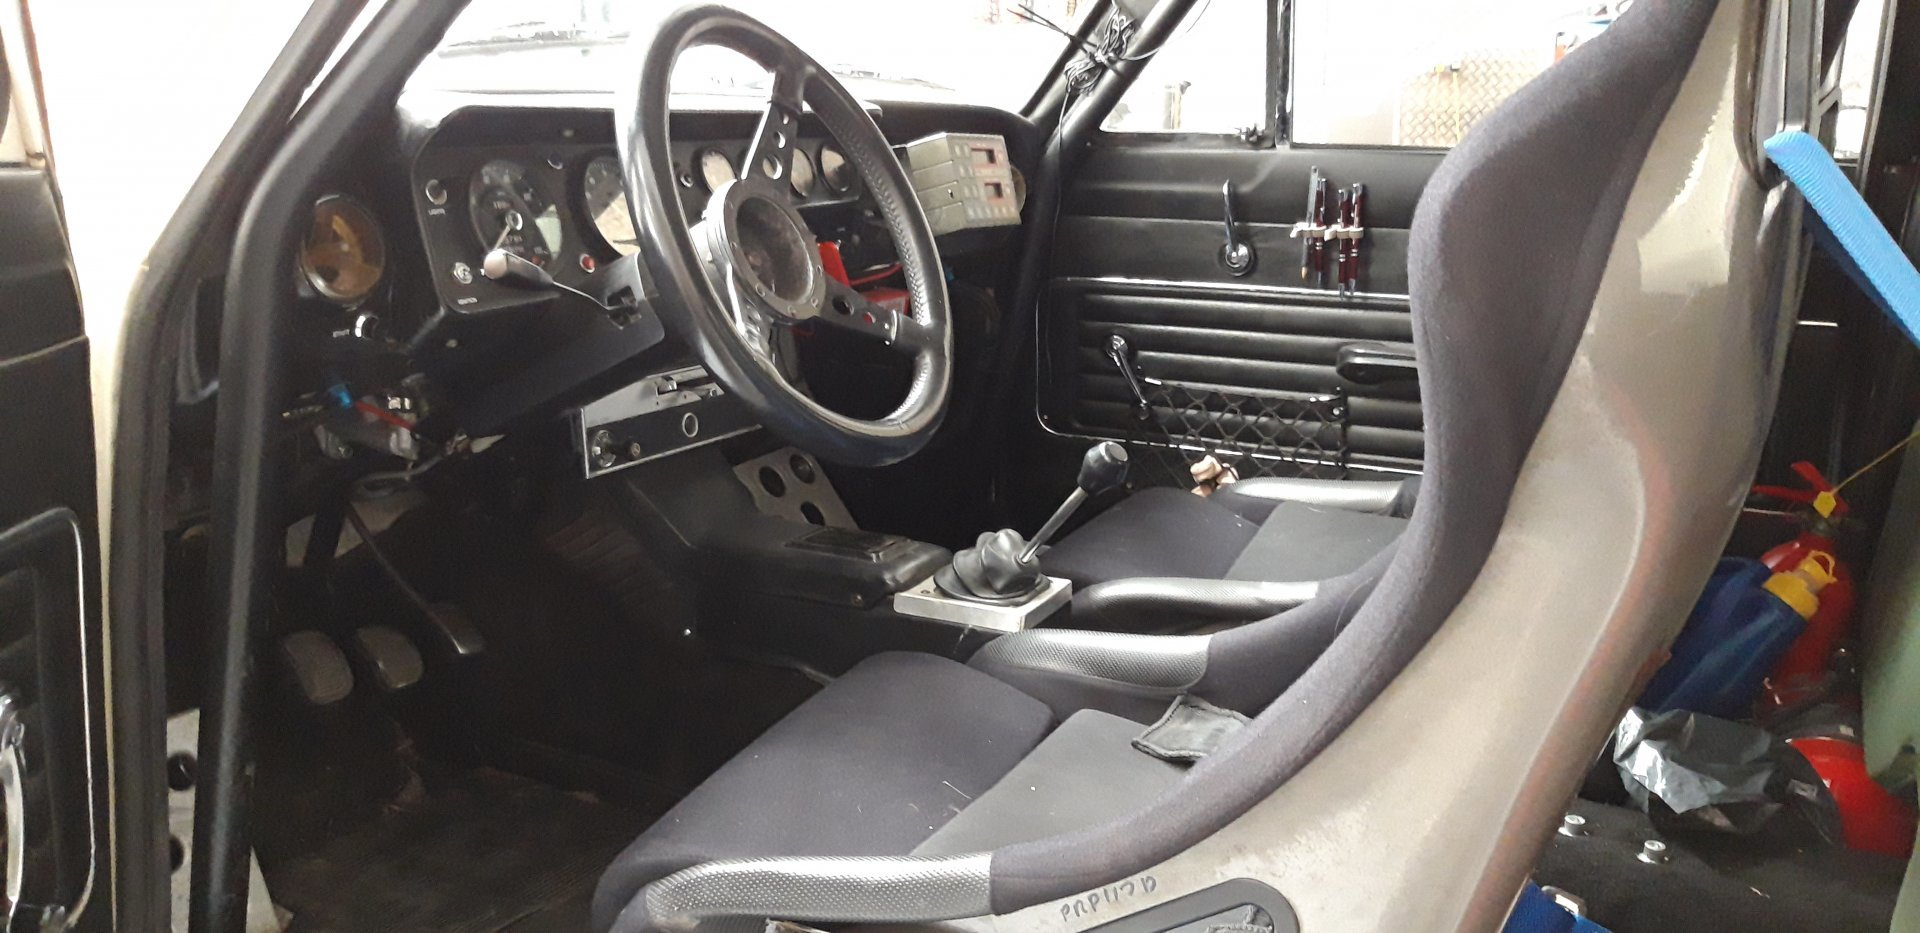 1966 Mk1 Lotus Cortina, MSA Logbook, Endurance Spec Rally Car For Sale (picture 5 of 6)